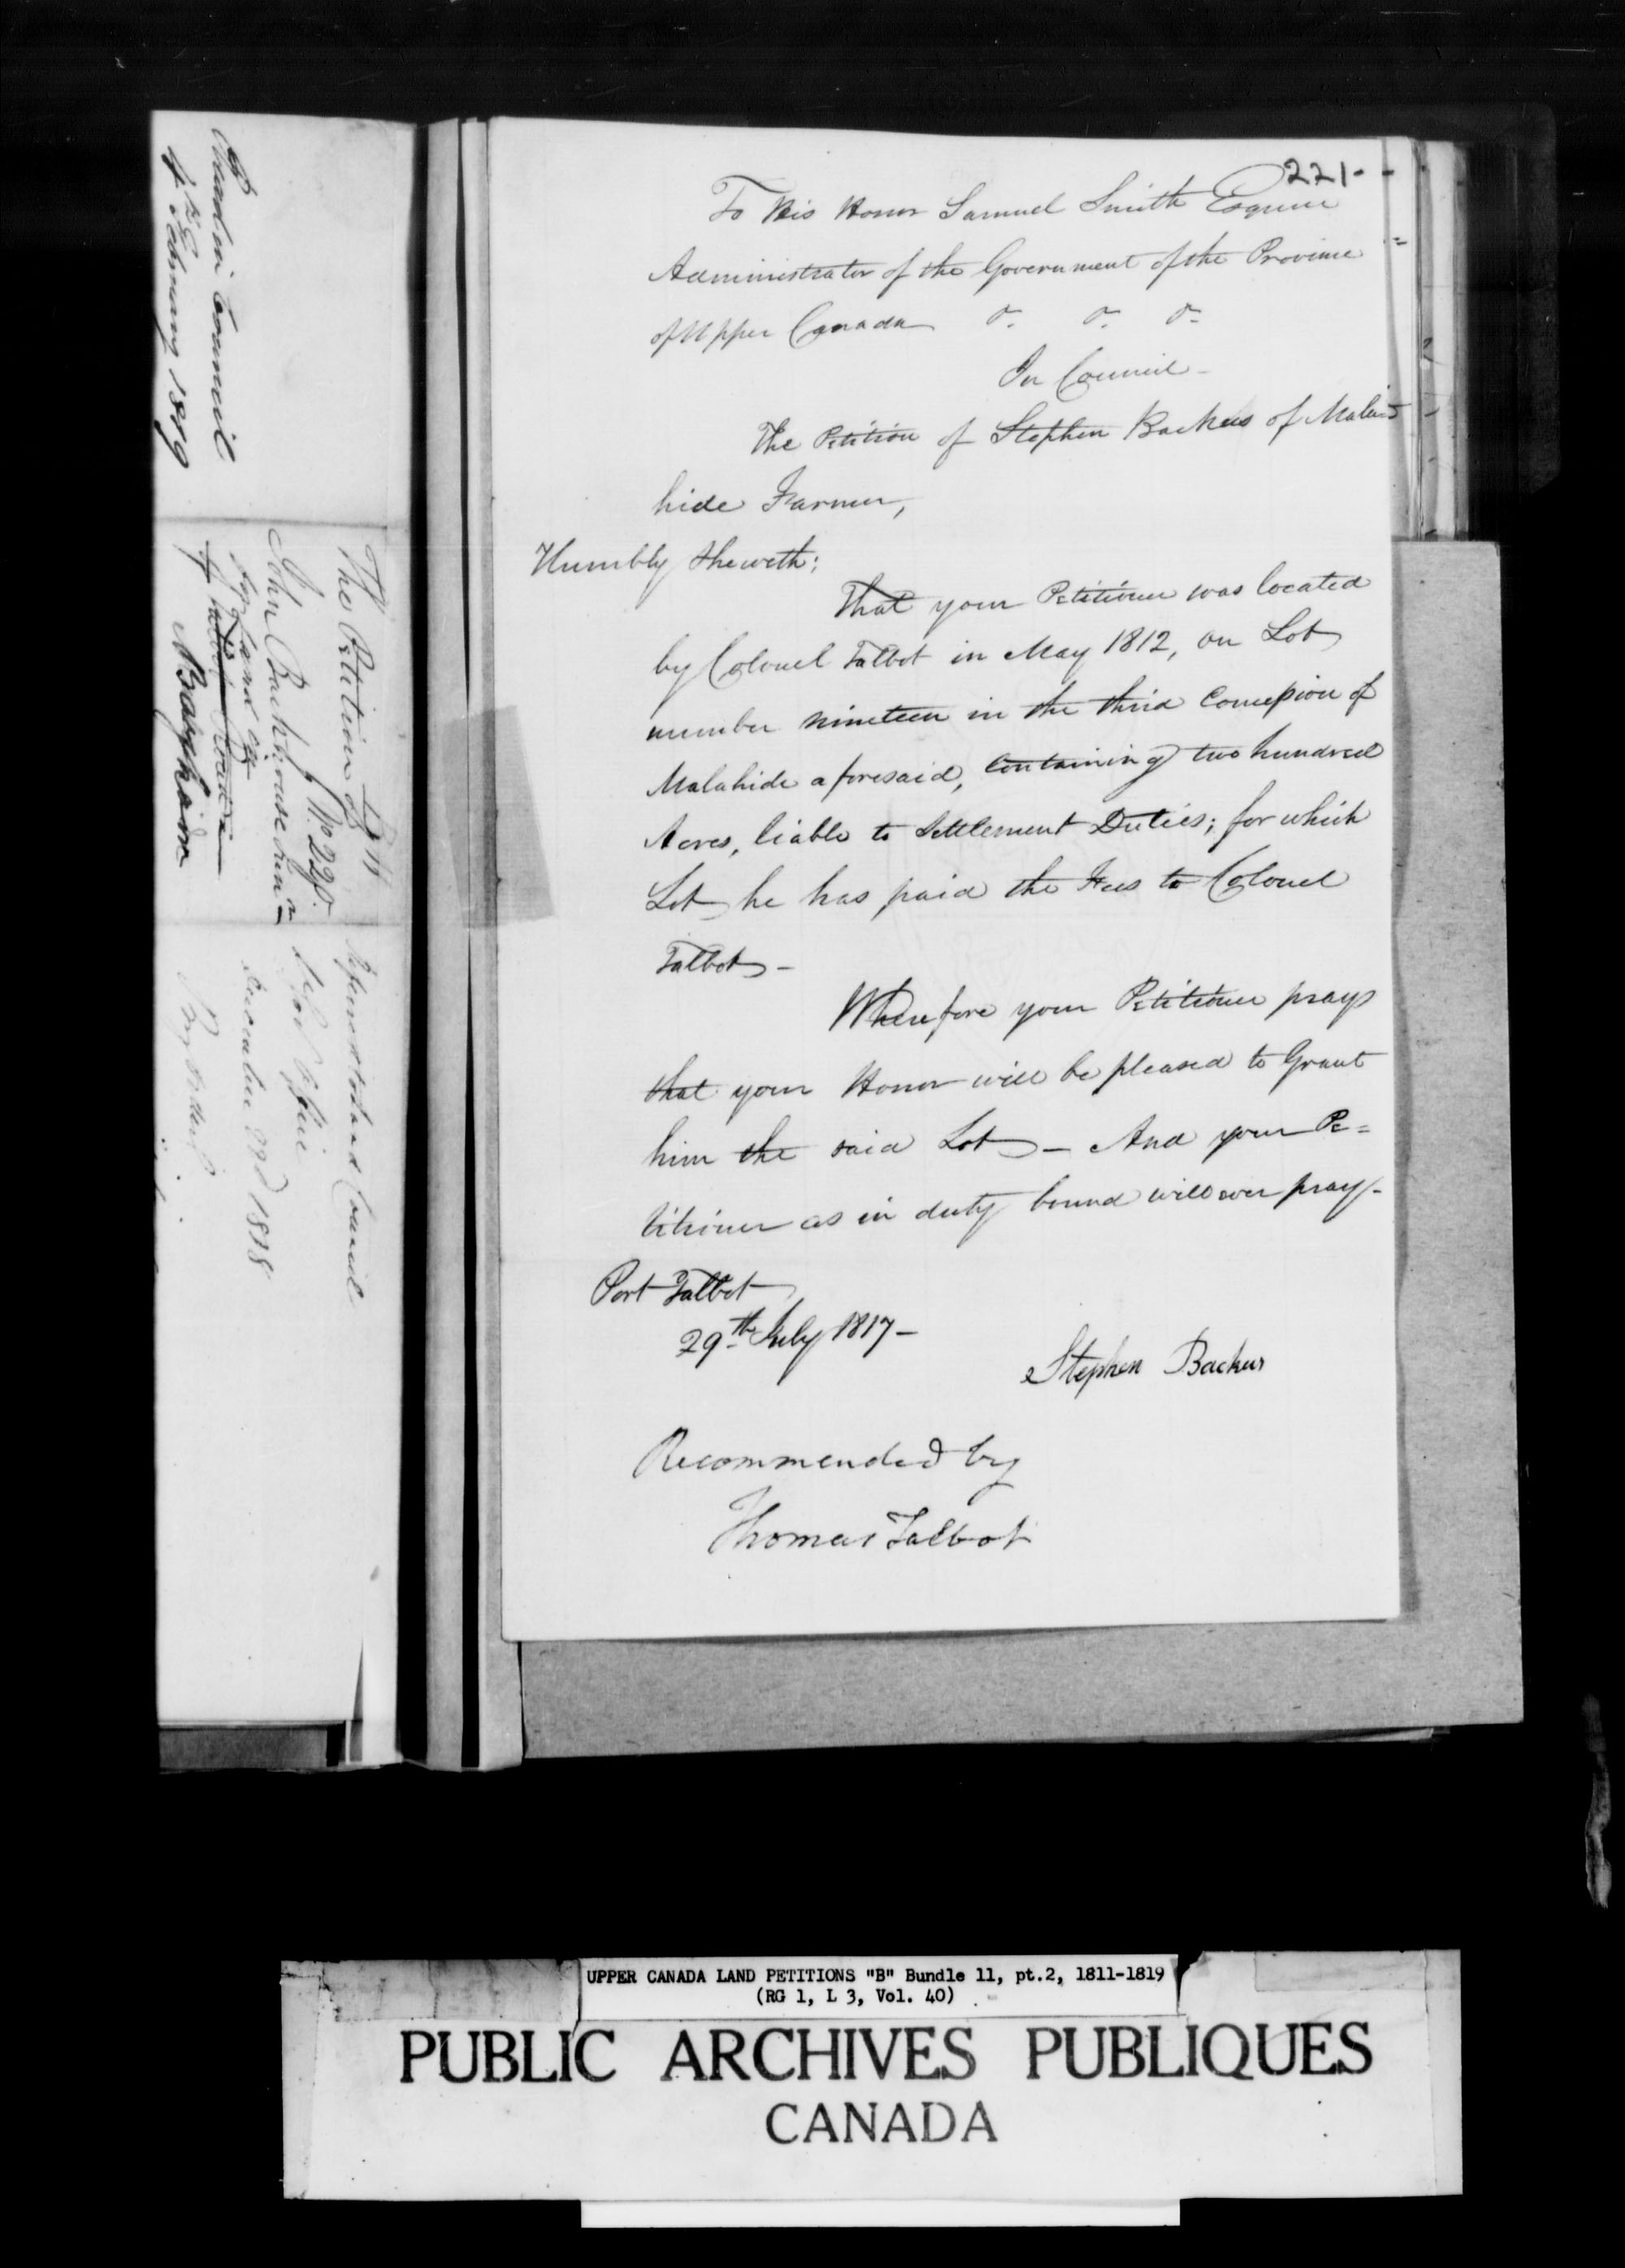 Title: Upper Canada Land Petitions (1763-1865) - Mikan Number: 205131 - Microform: c-1624